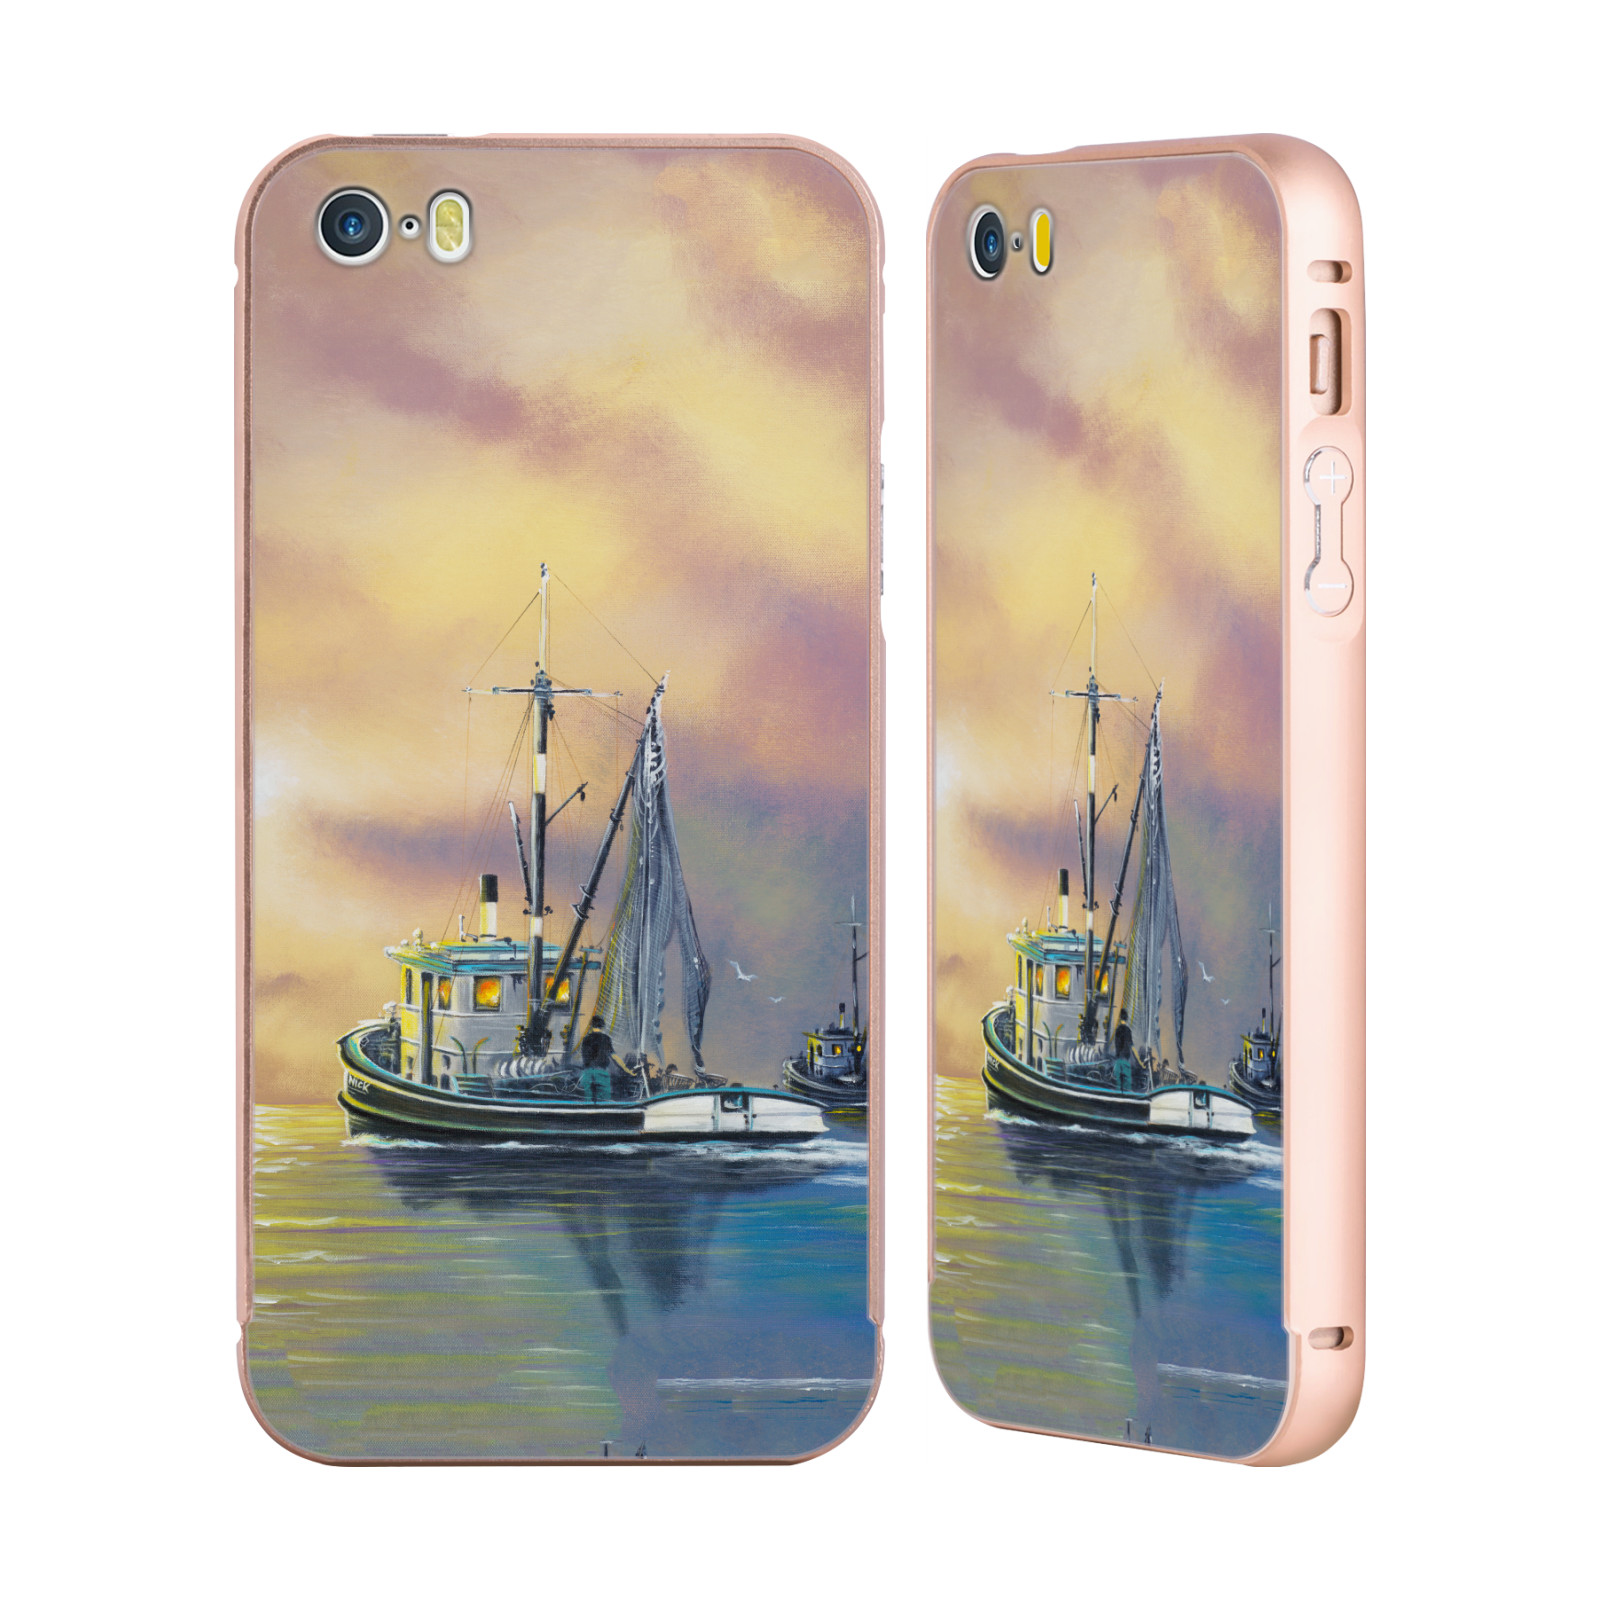 OFFICIAL-GENO-PEOPLES-ART-HOLIDAY-GOLD-SLIDER-CASE-FOR-APPLE-iPHONE-PHONES